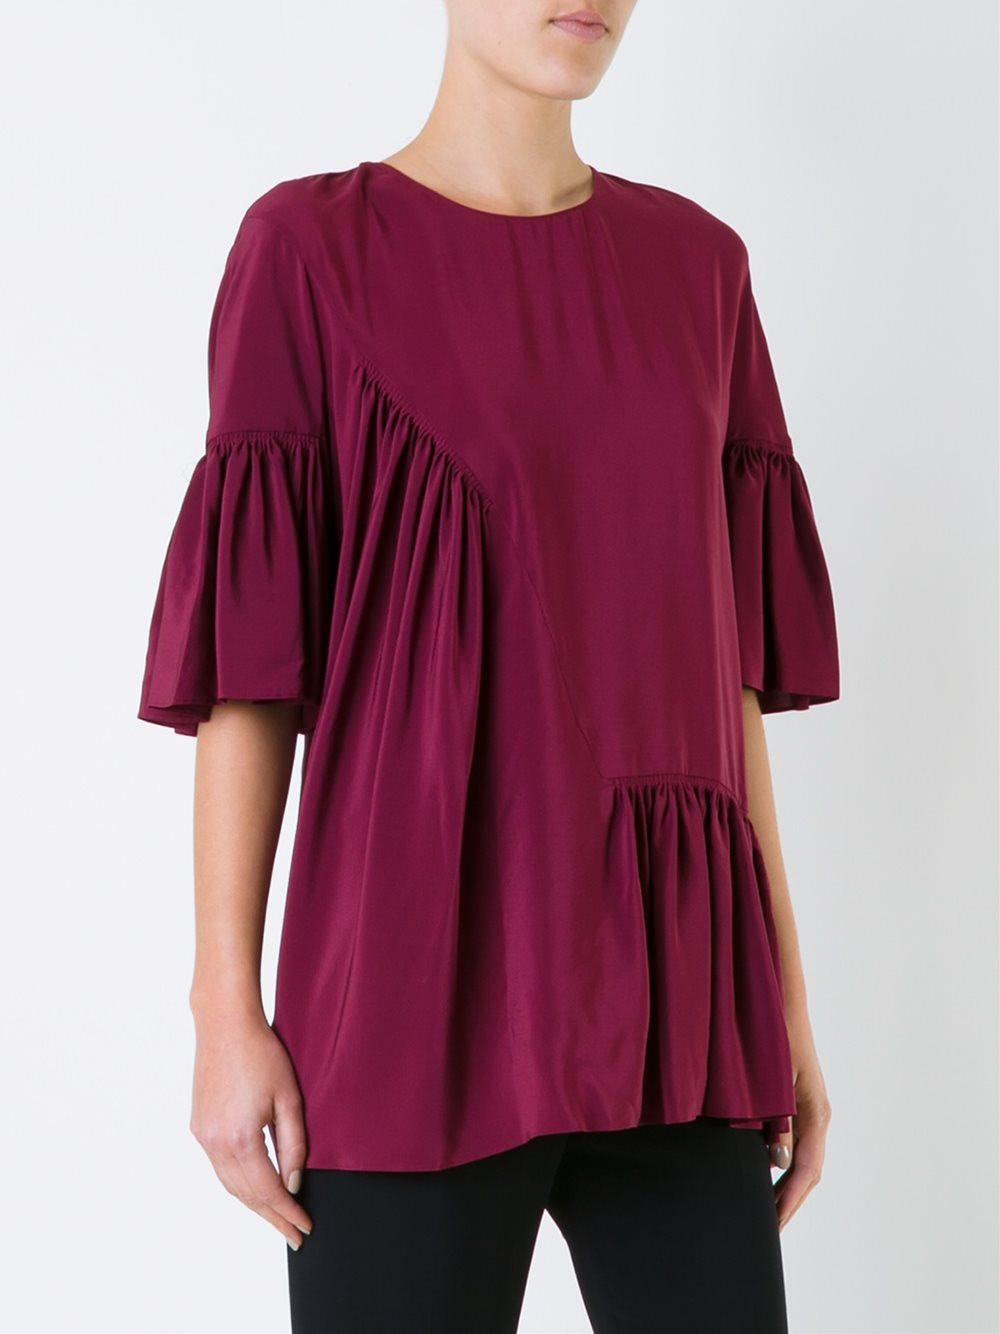 ruffled detail top - Red Stella McCartney Cheap Amazon Fast Delivery Sale Online 2018 Online 2018 Unisex Sale Online Sale Fake toG06l